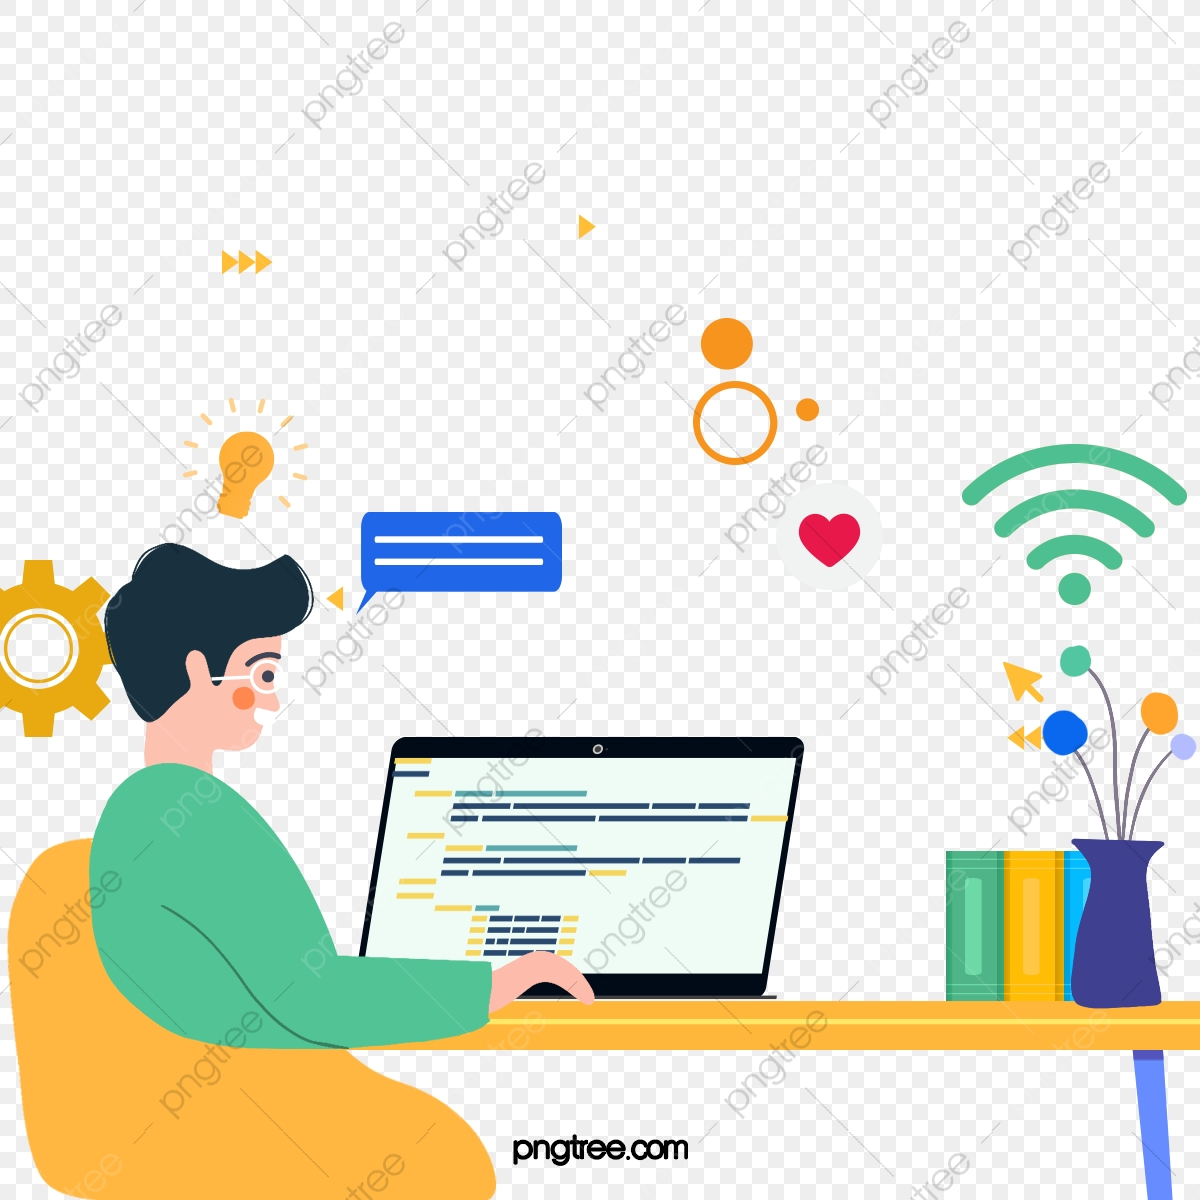 Online Learning Png Images Vector And Psd Files Free Download On Pngtree